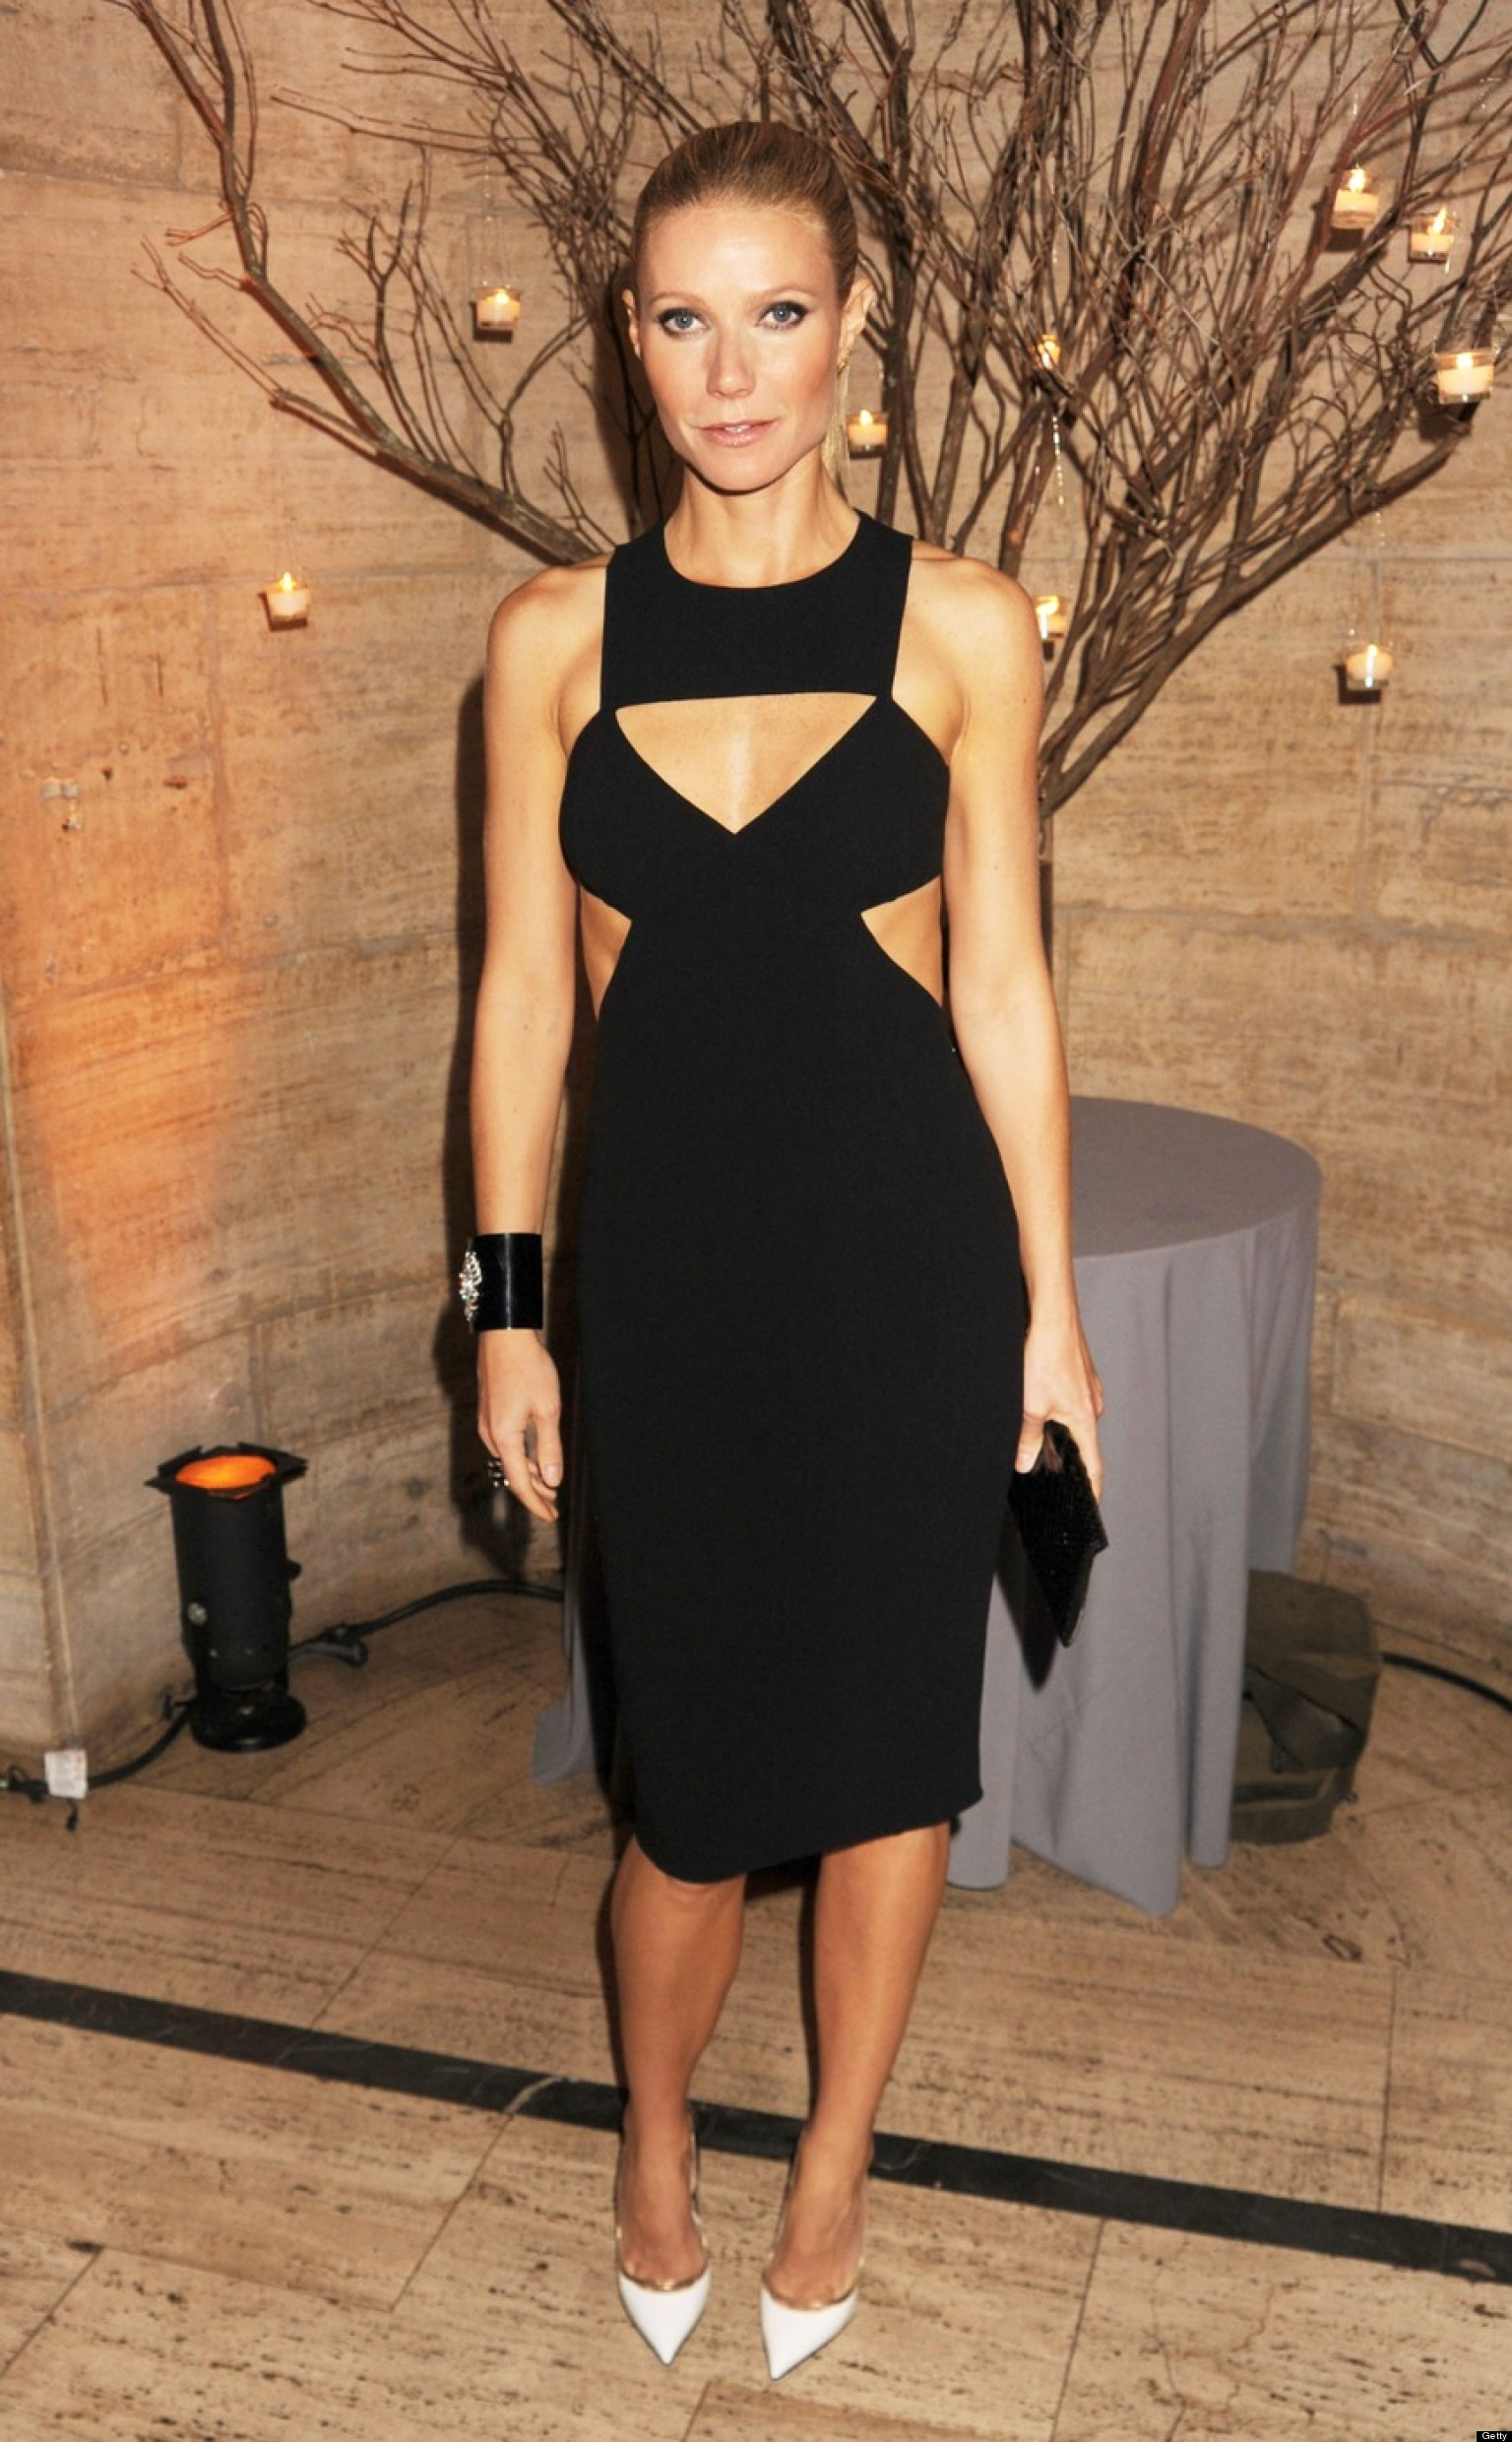 Gwyneth Paltrow Hot: Actress Stuns In Sexy Cutout Dress ...